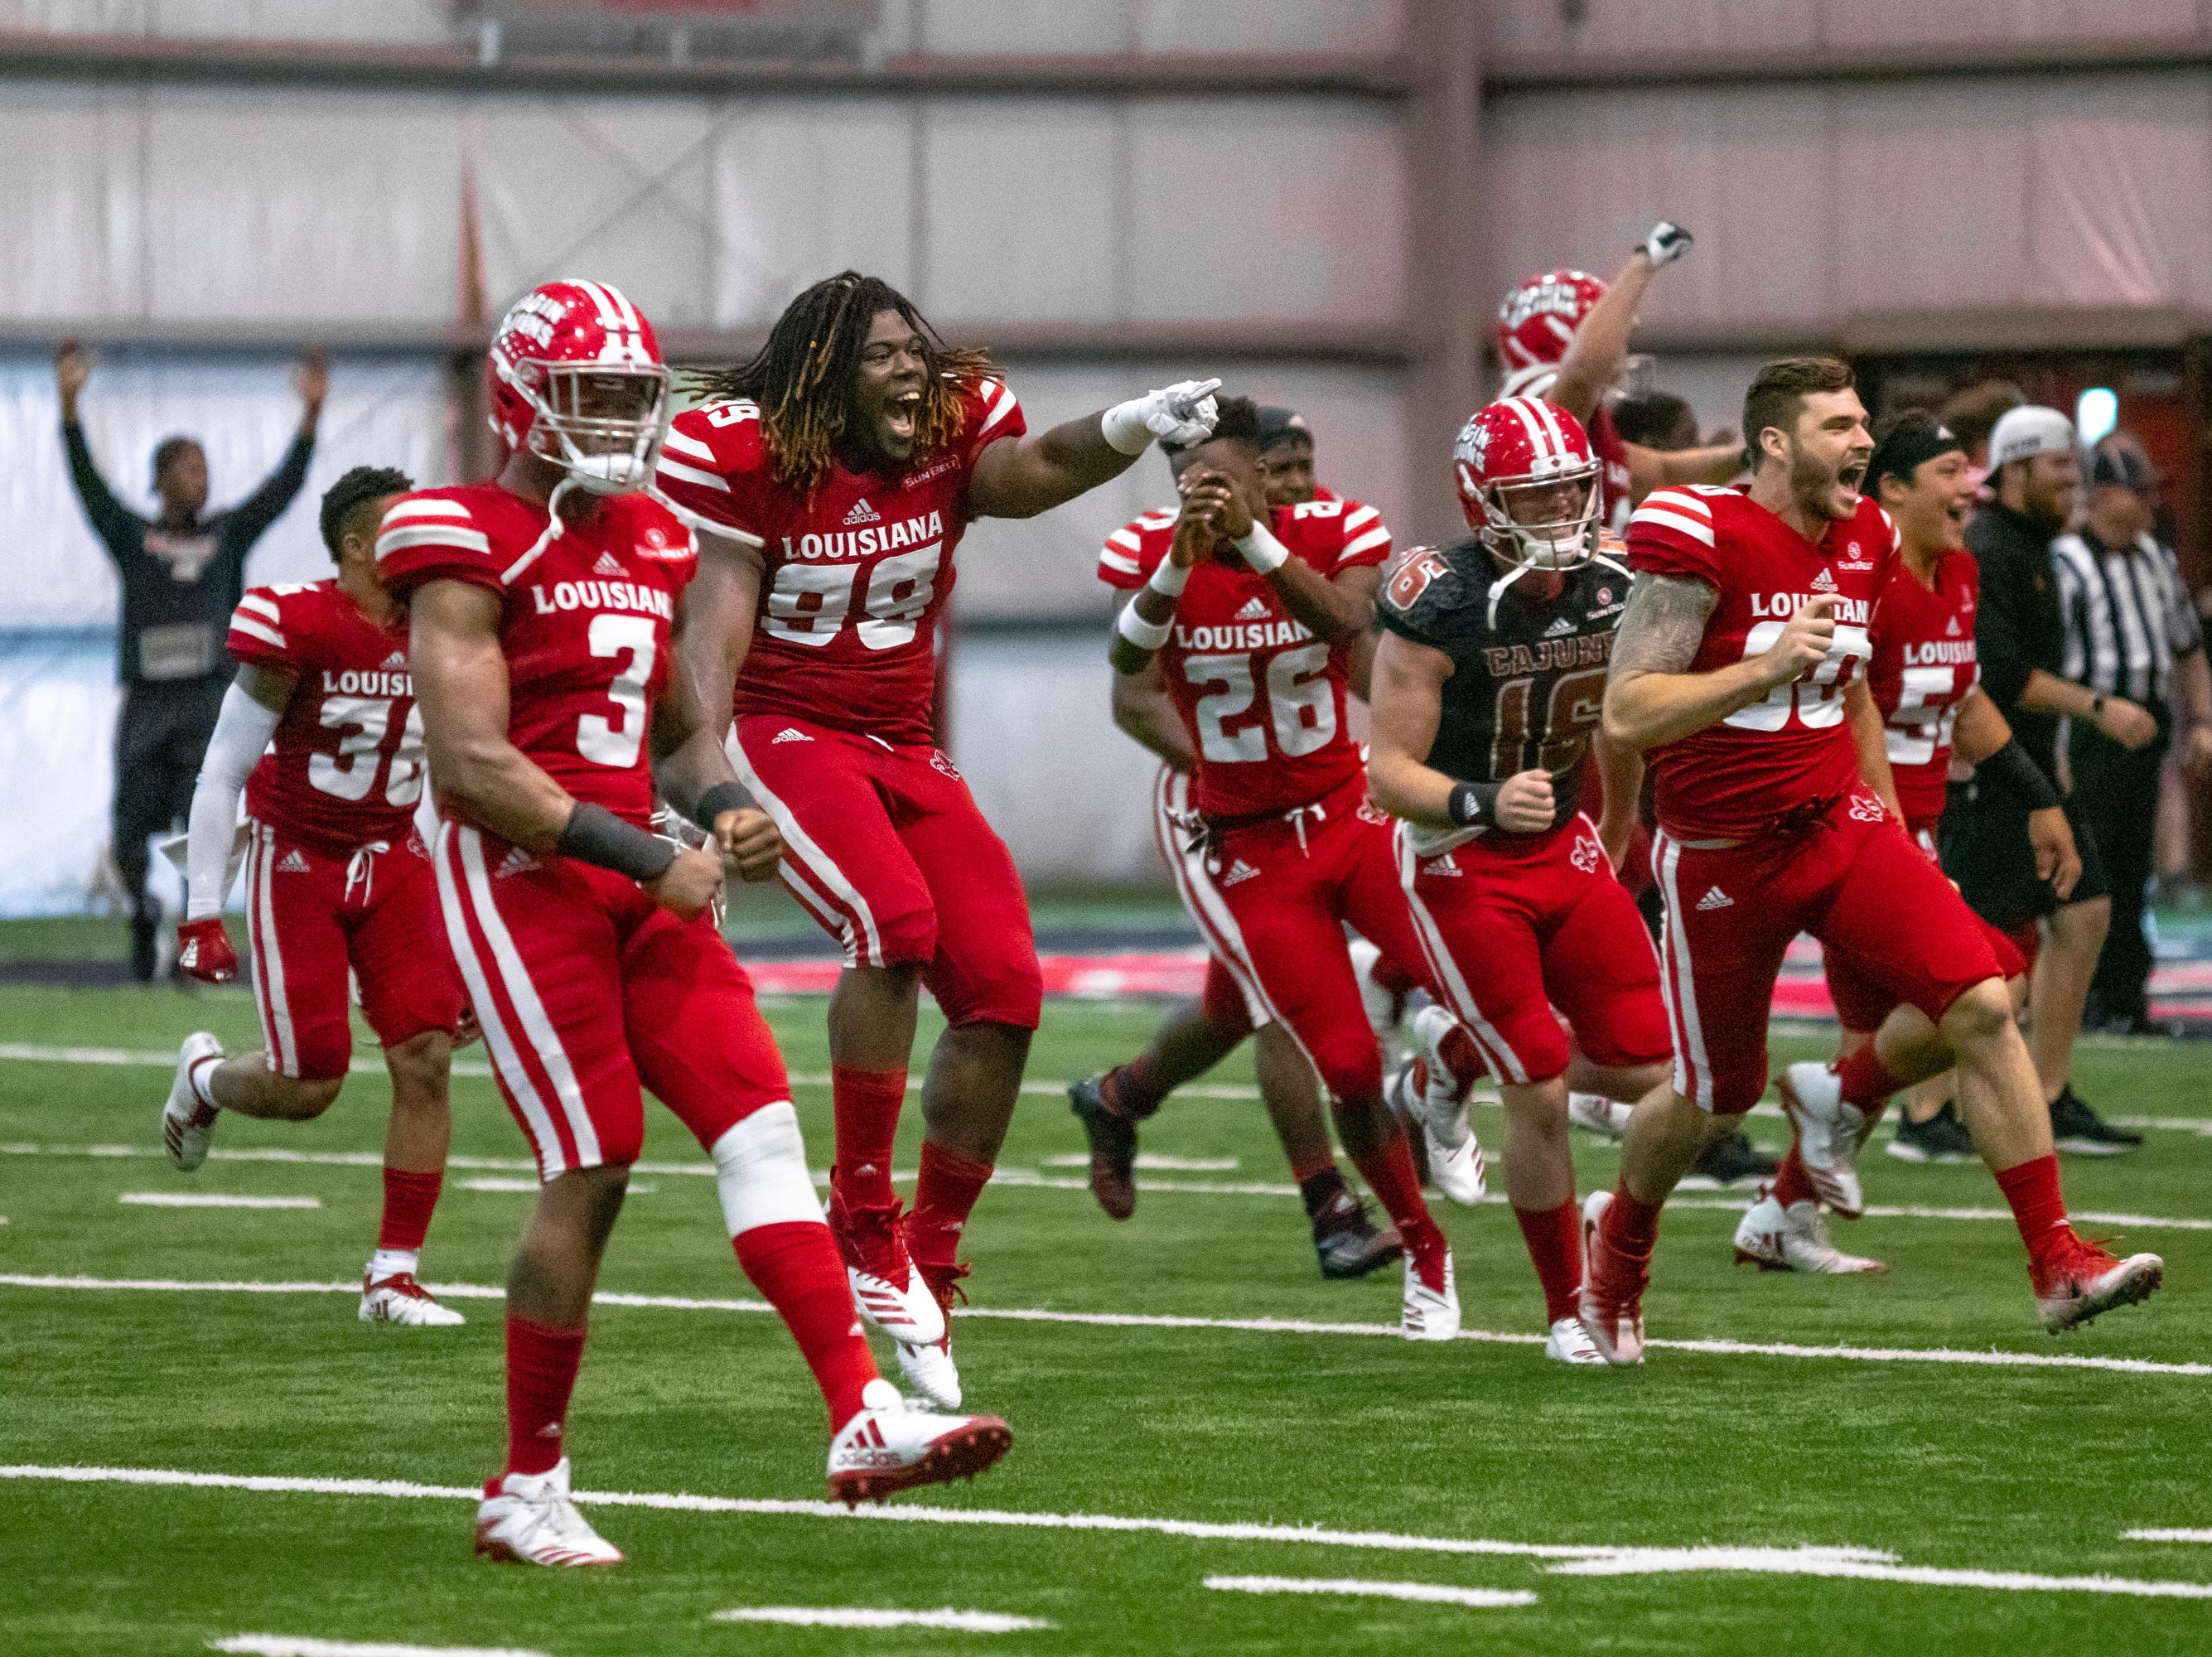 UL's Vermilion team celebrates their win after the game as the Ragin' Cajuns football team plays their annual Spring football game against one another in the Leon Moncla trainig facility on April 13, 2019.